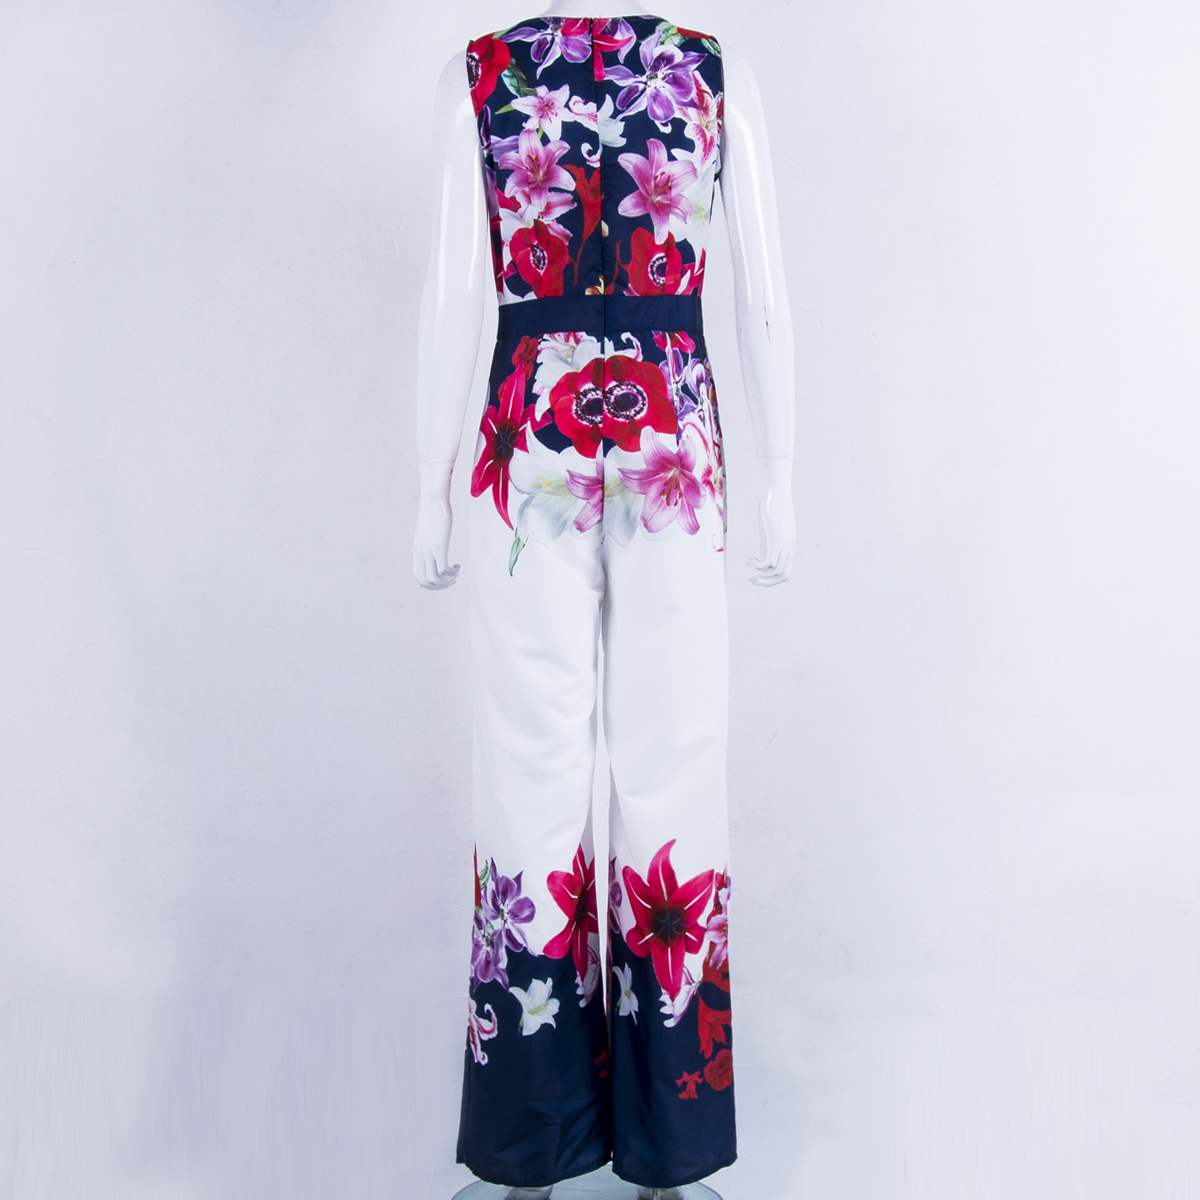 New Women Playsuit Sexy V-neck Floral Jumpsuit Sexy Lady Clubwear Flower Summer Playsuit Wide Leg Party Jumpsuit Romper #4